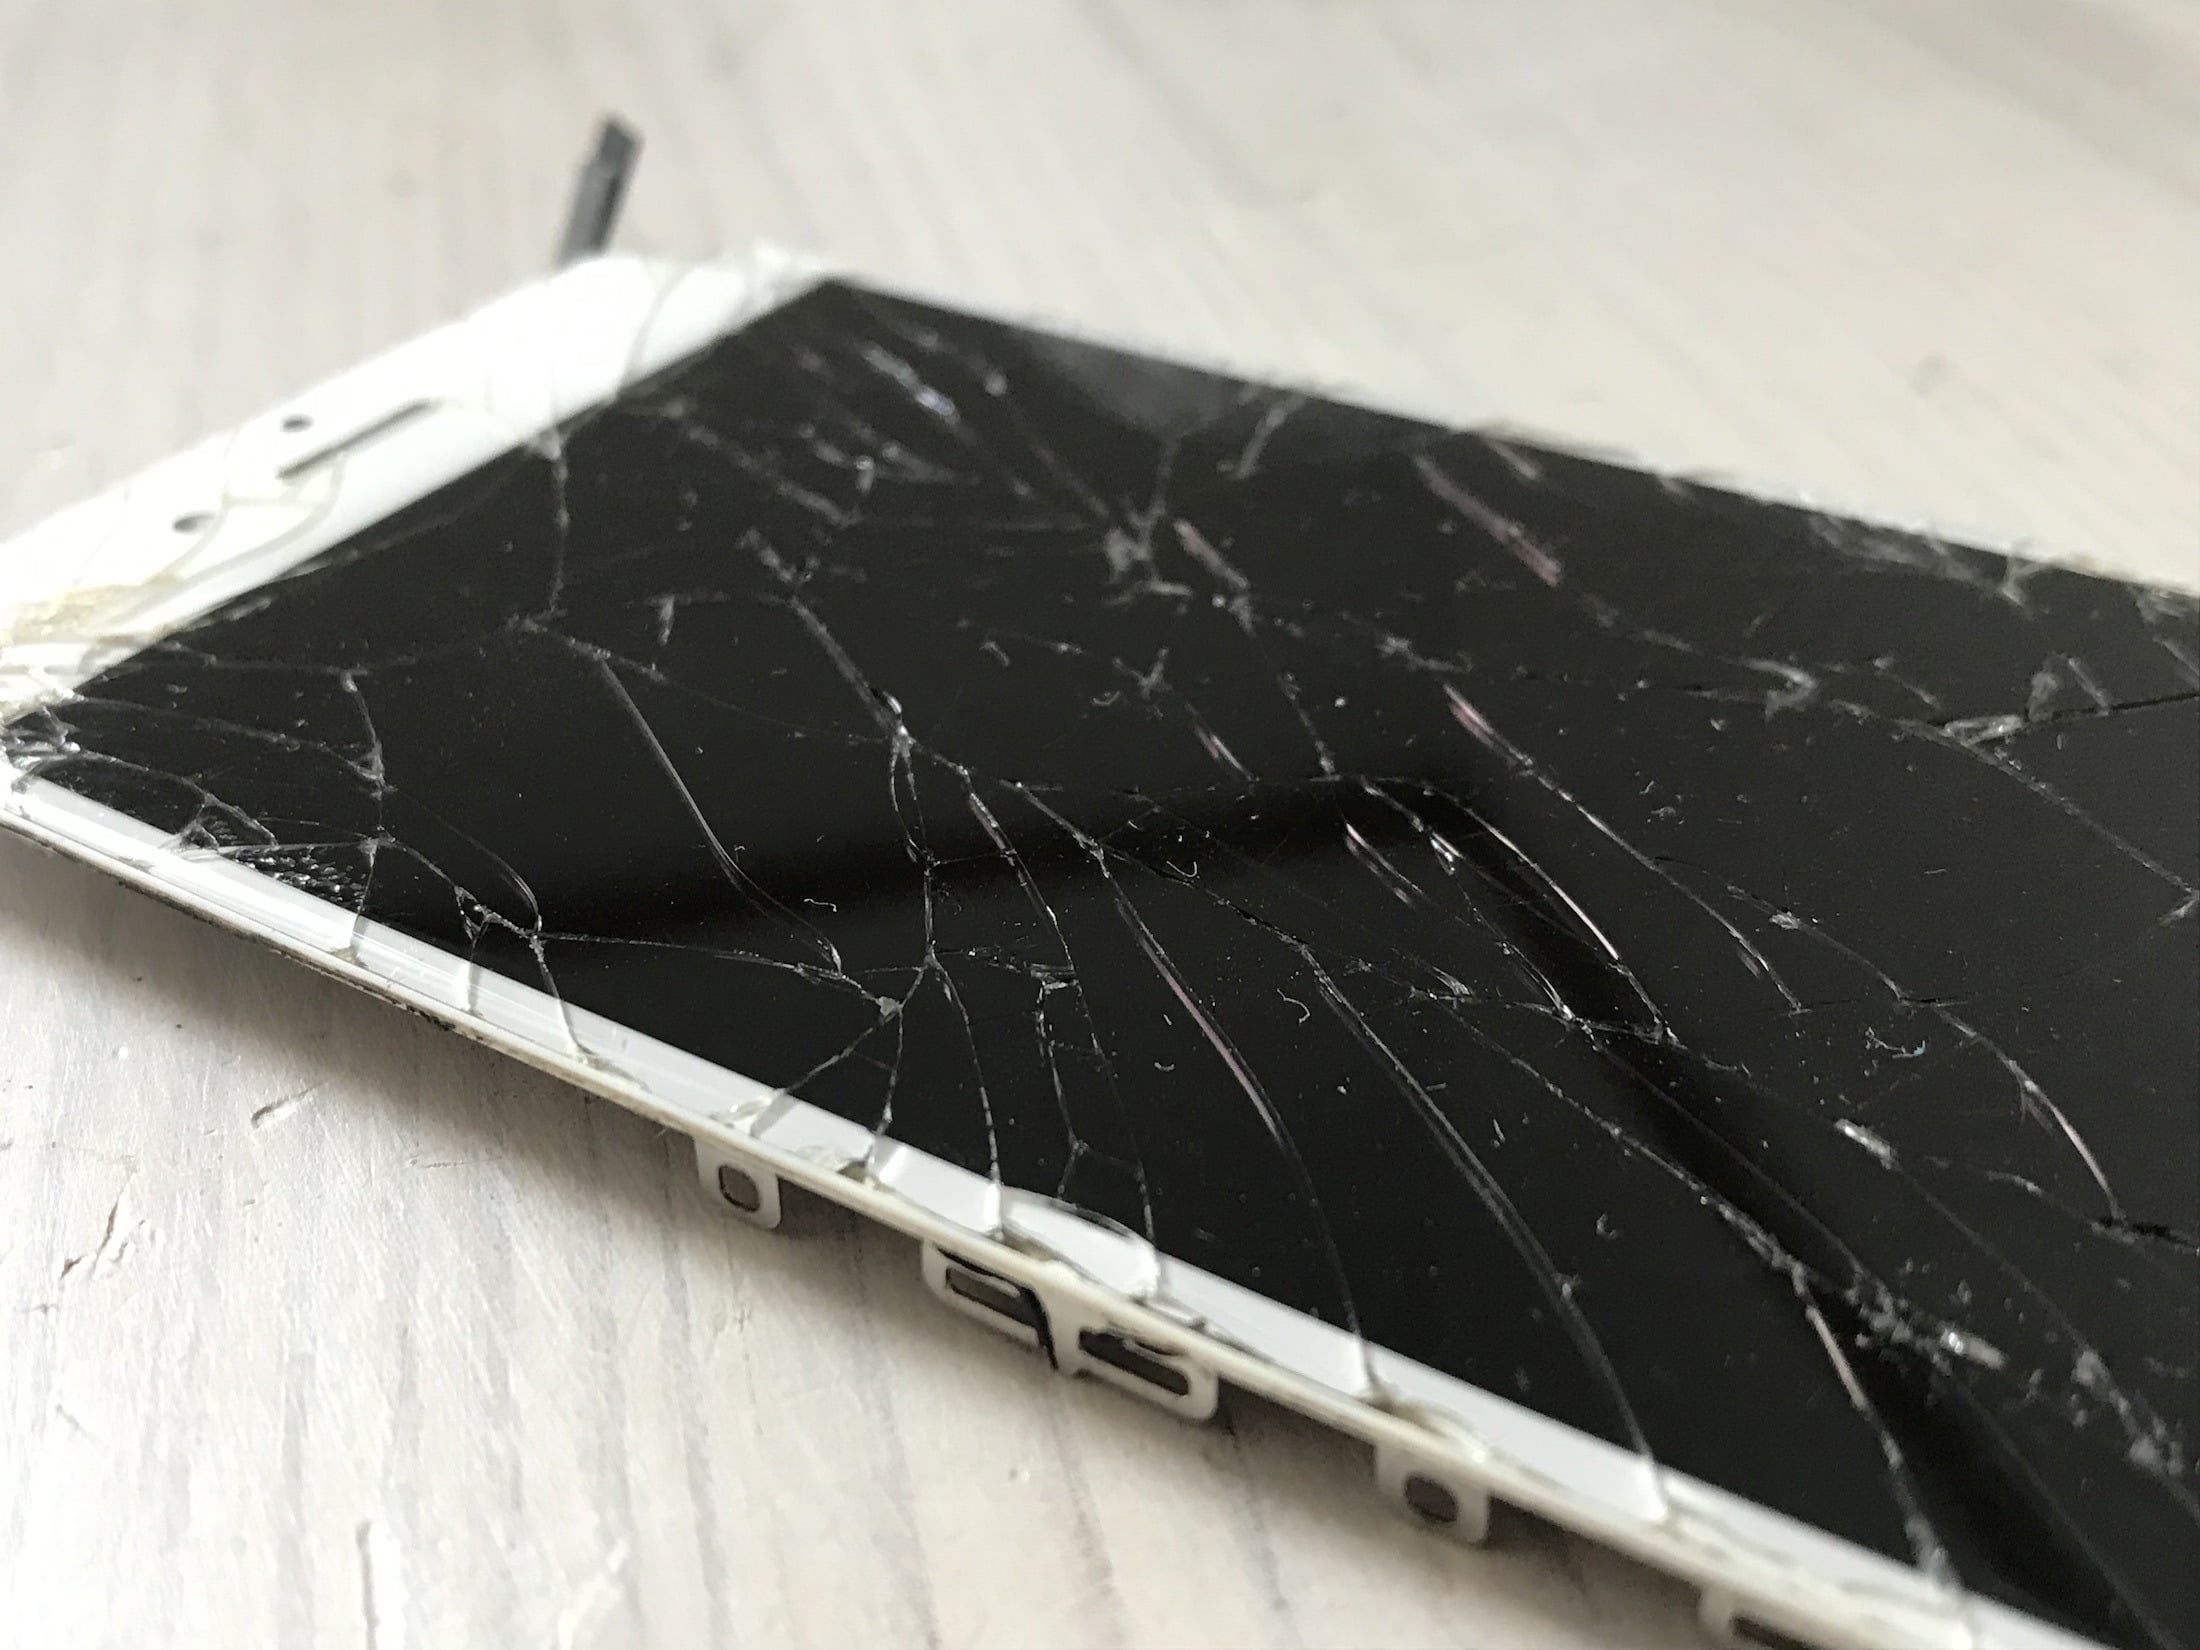 Iphone Display Shattered